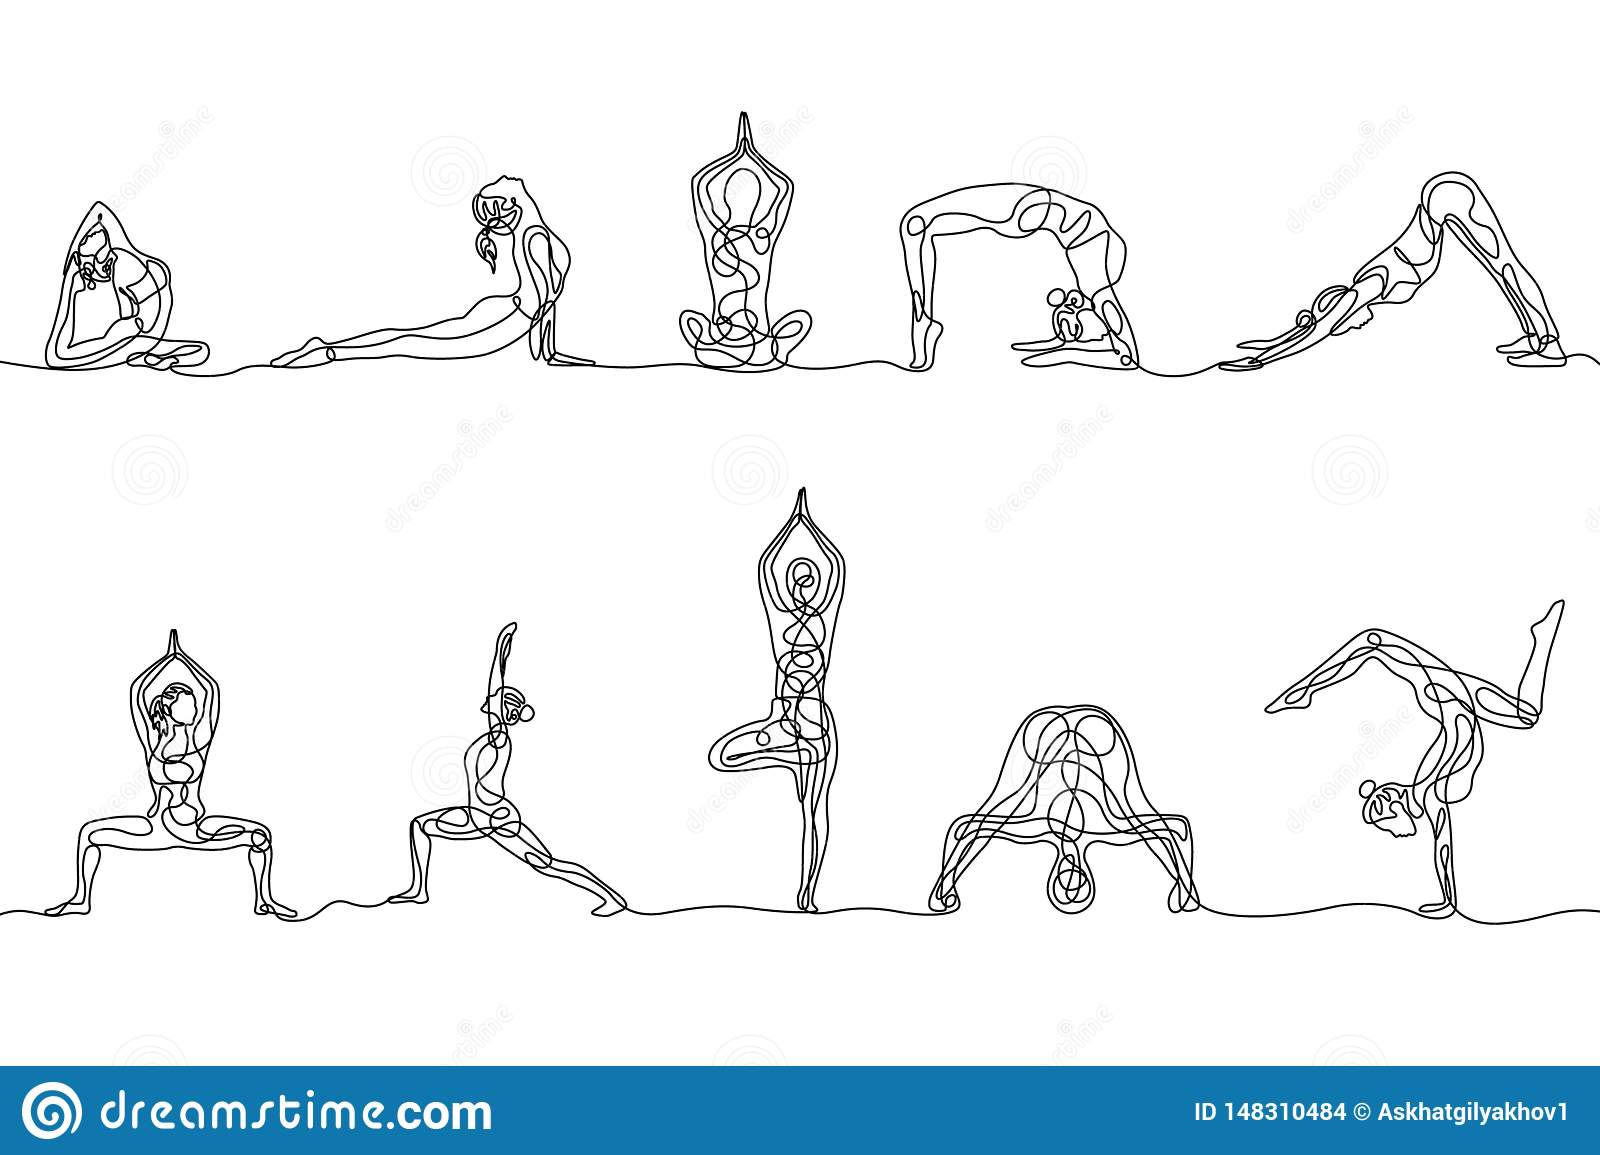 Continuous One Line Drawing Set Of Woman Yoga Poses Vector Stock Vector Illustration Of Linear Meditation 148310484